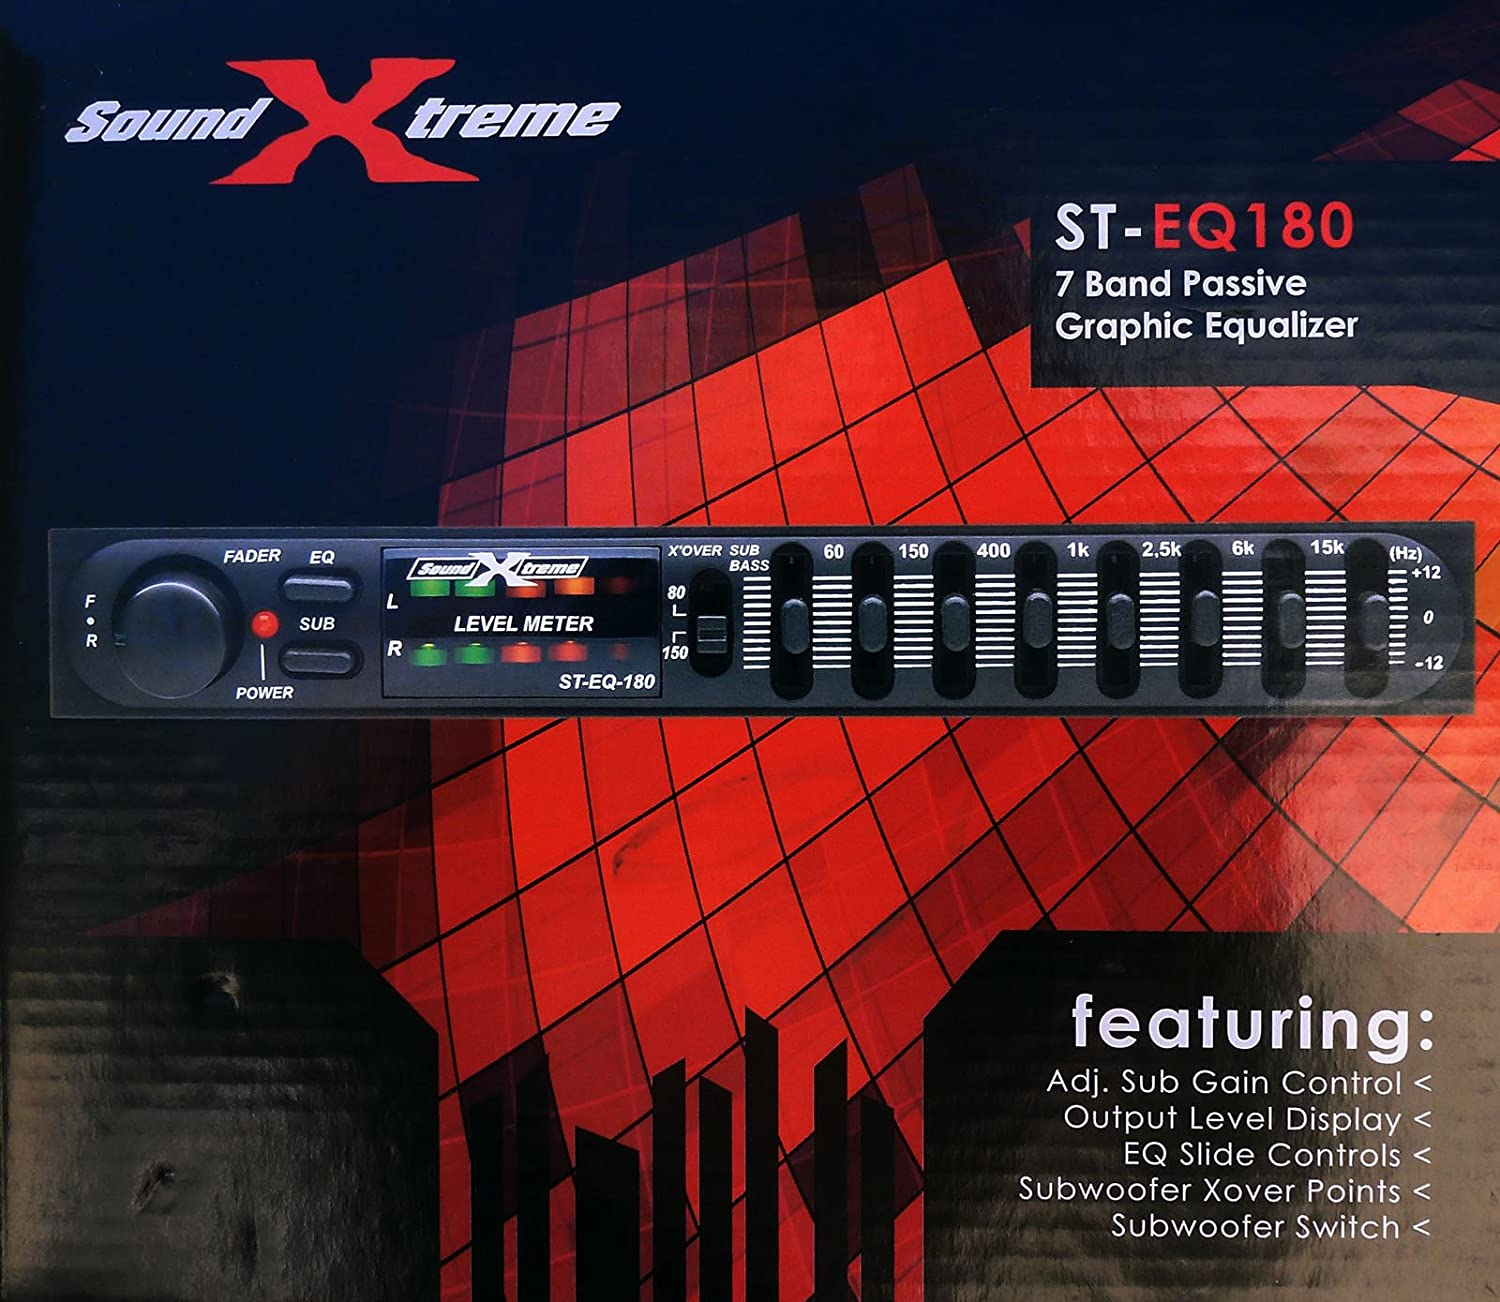 Soundxtreme Car Audio Passive Equalizer 7 Band 1 2 Din Graphic Equaliser Electronic Boy For You Pre Amp Eq Sub Crossover Electronics